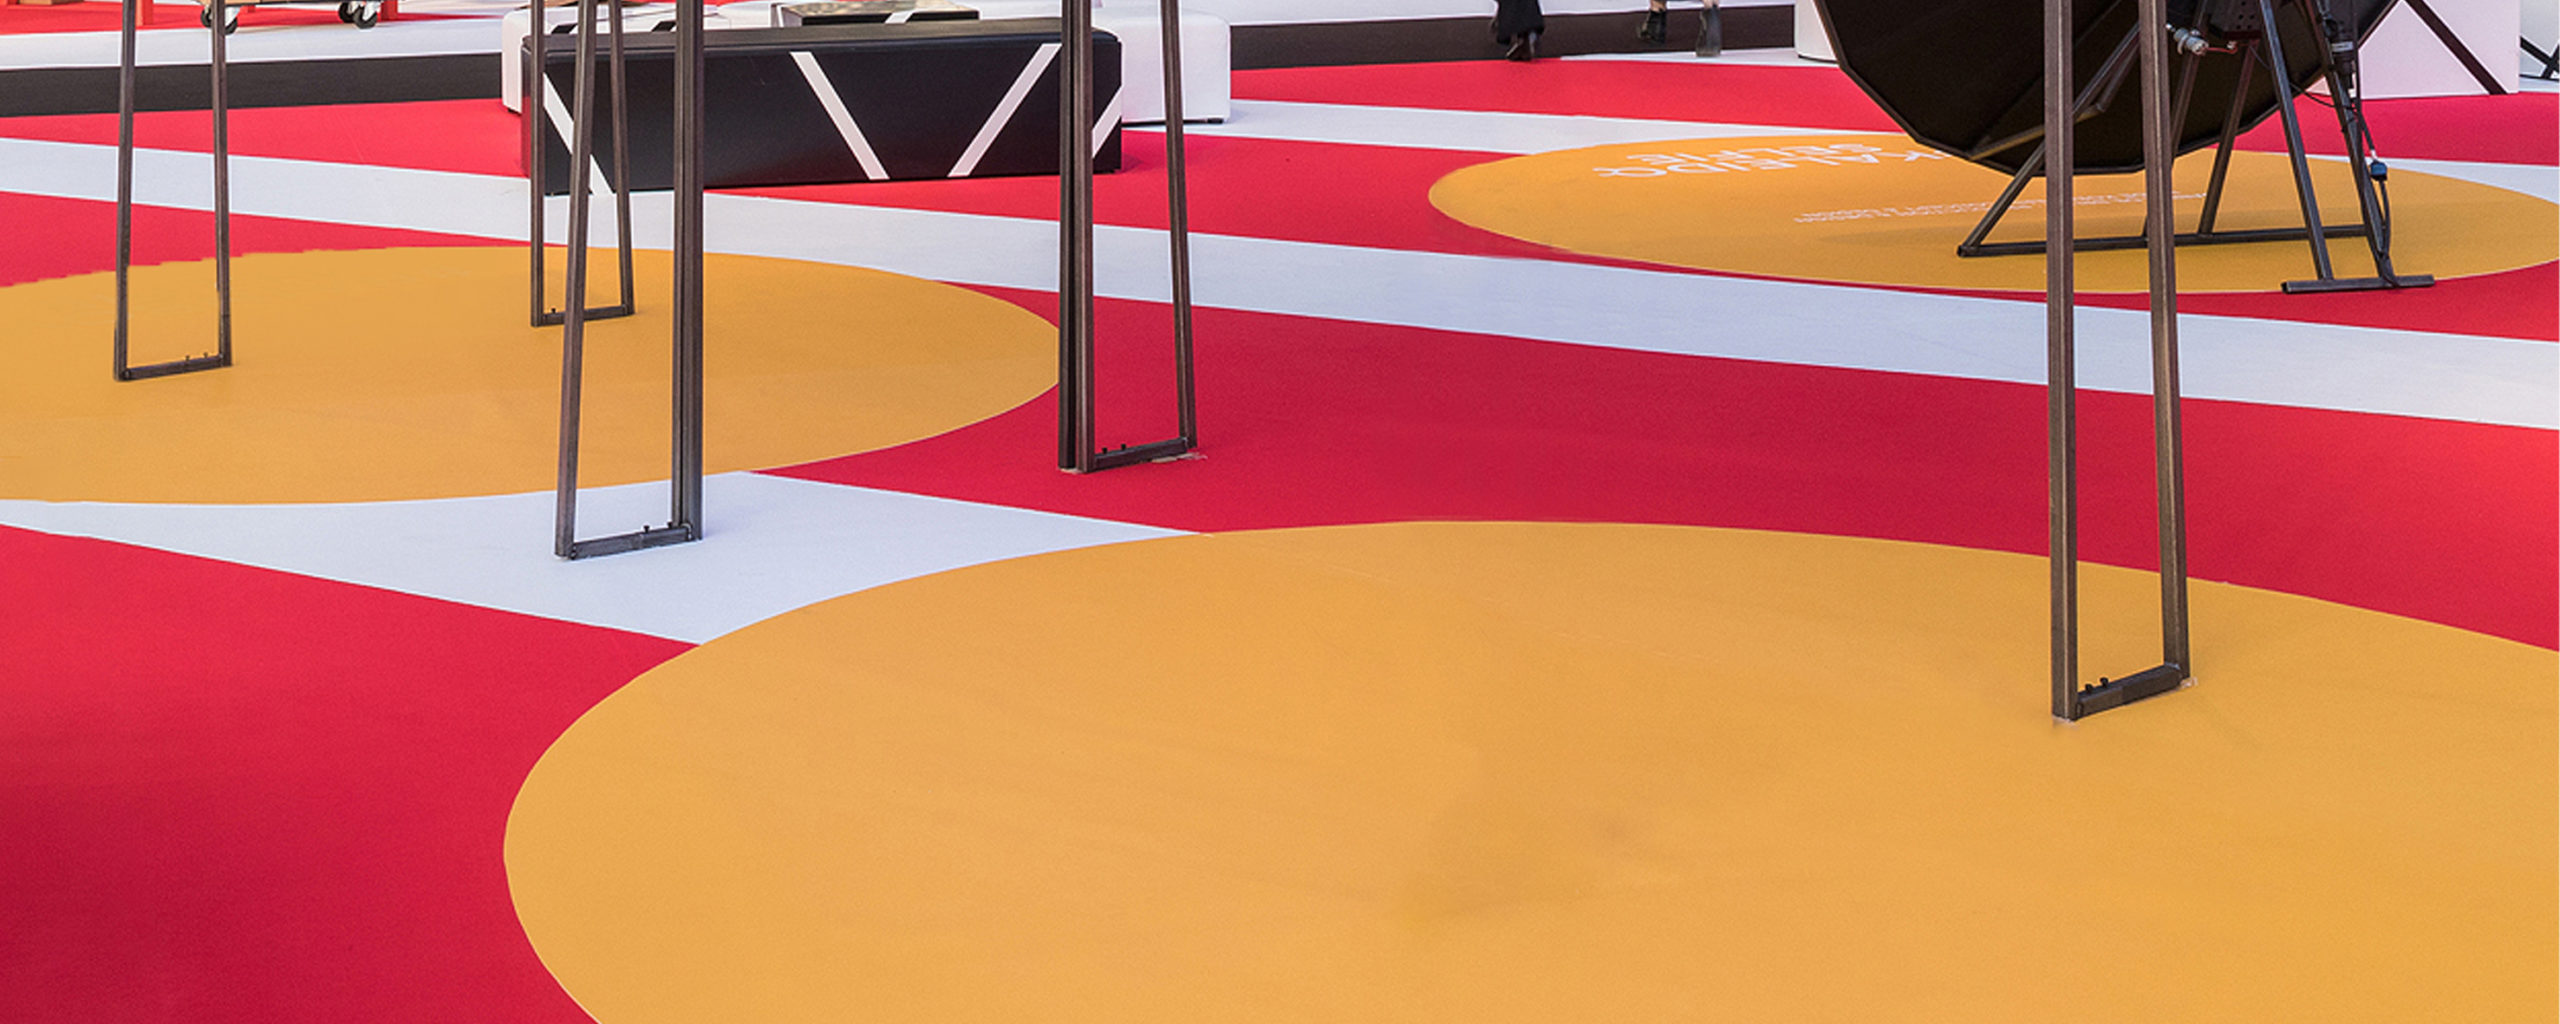 sommer-event-carpet-expostyle-expocolor-brick-red-gold-white